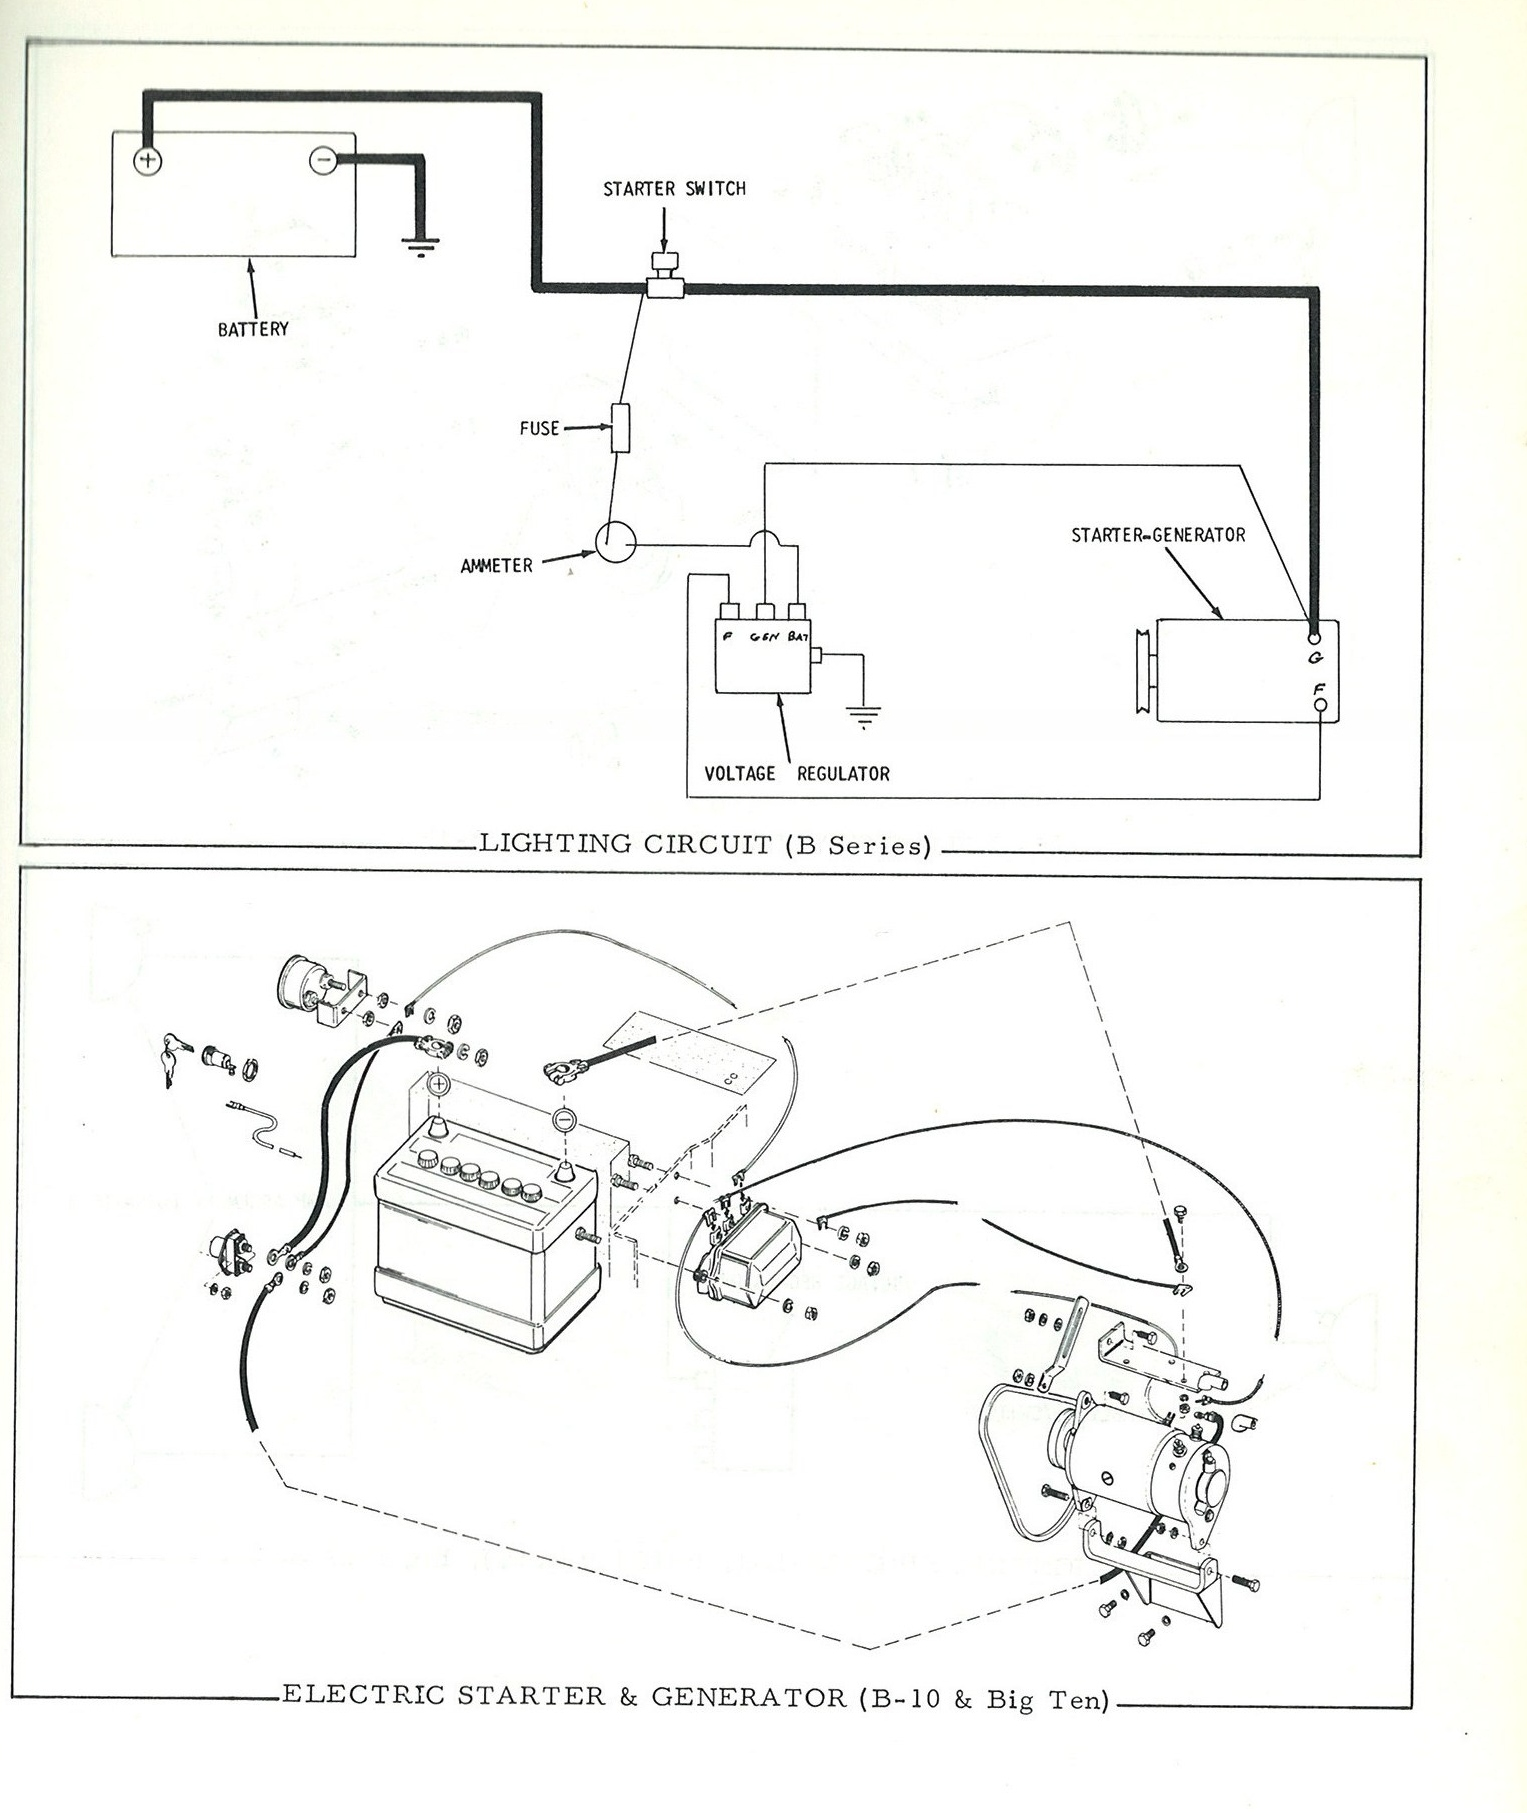 Allis Chalmers C Wiring Diagram Without Lights Schematics Wiring Allis  Chalmers B Implements 1952 Allis Chalmers B Wiring Diagram